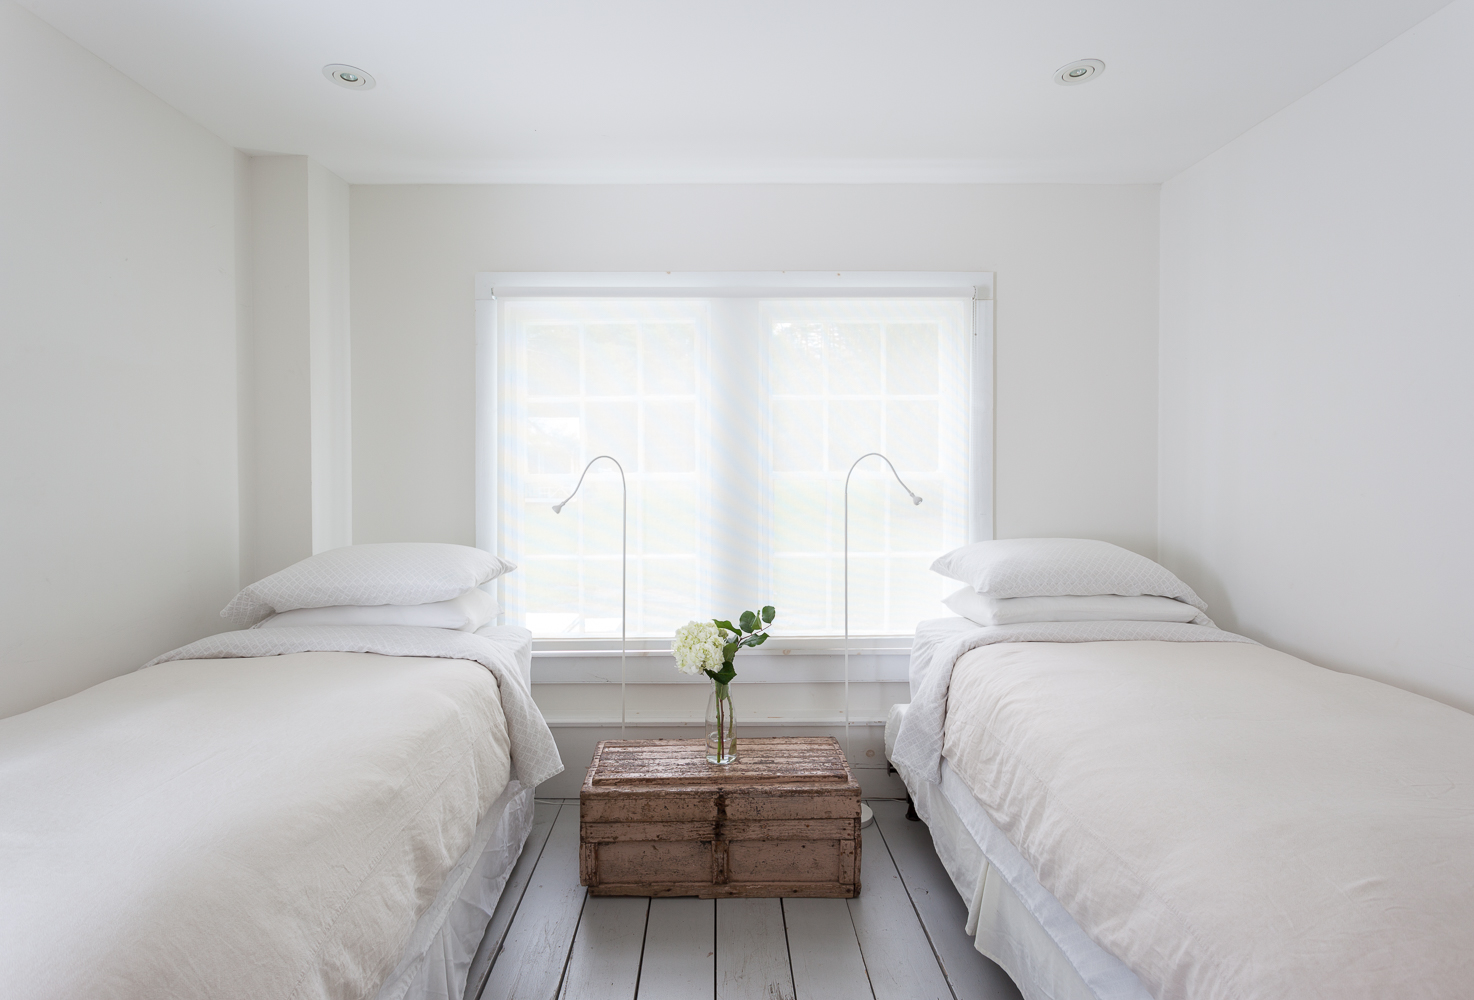 Two twin beds sleep one guest each at the Floating Farmhouse Catskills vacation rental in upstate New York, 2 hours from NYC